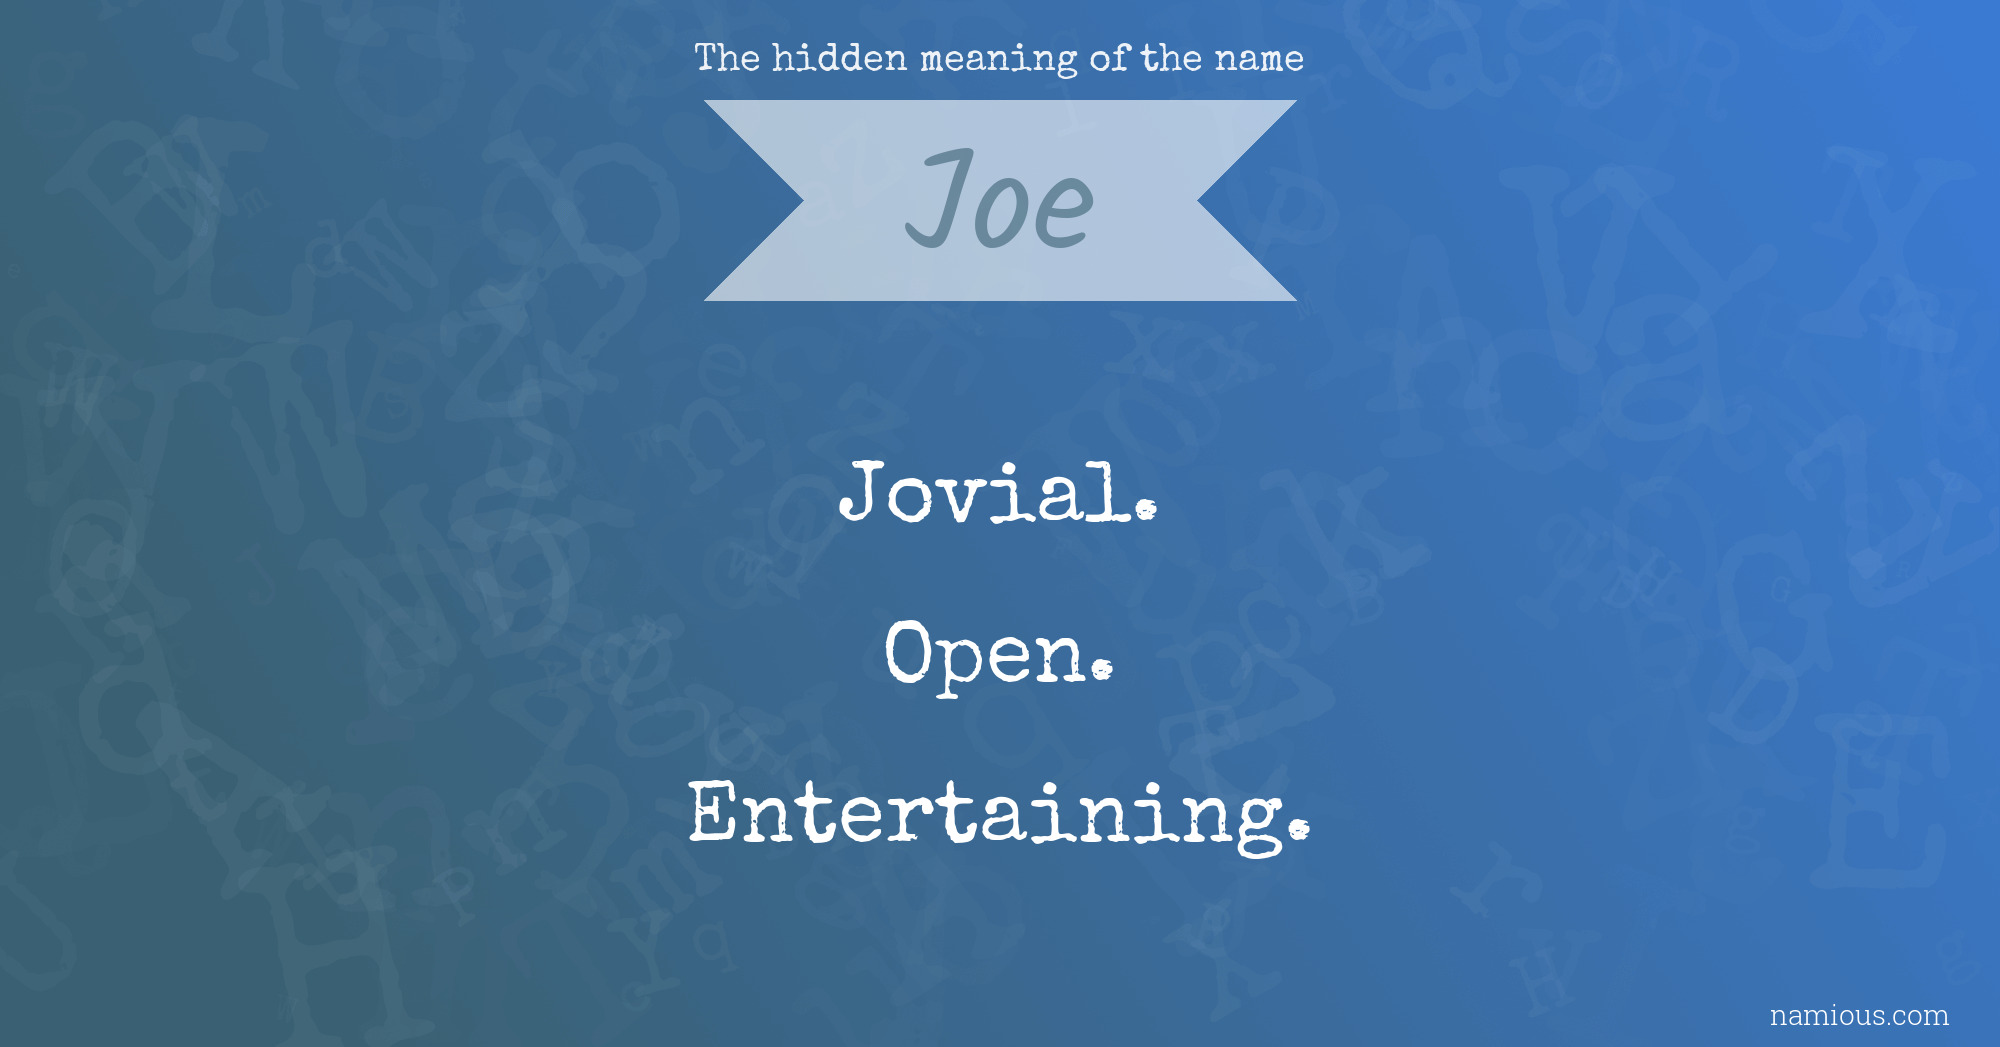 The Hidden Meaning Of The Name Joe Namious He did not enter with flying colors, for joe was no great scholar, but he was by no means at the foot of the ladder. the hidden meaning of the name joe